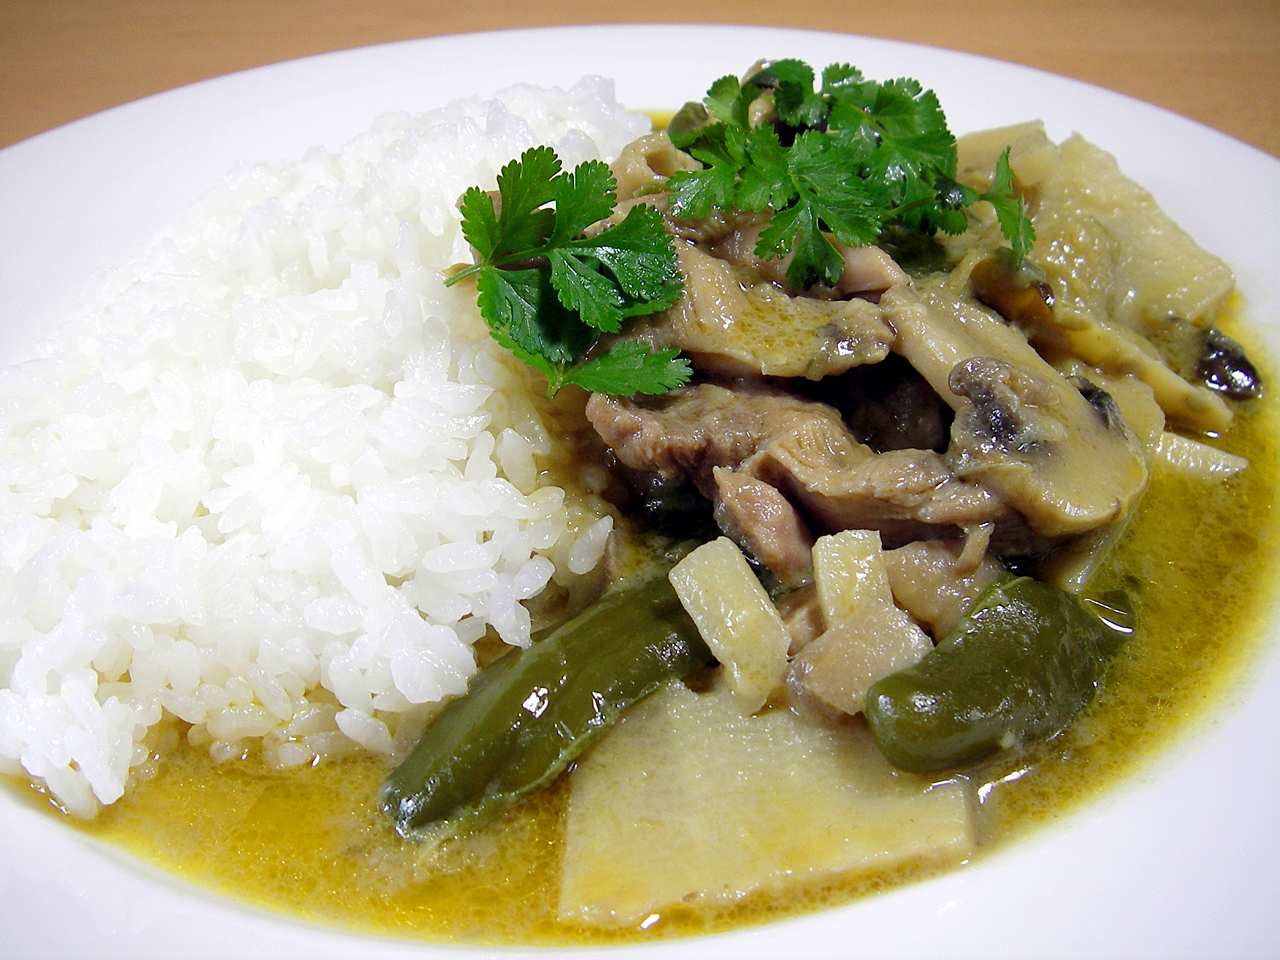 File:Green curry.jpg - Wikipedia, the free encyclopedia